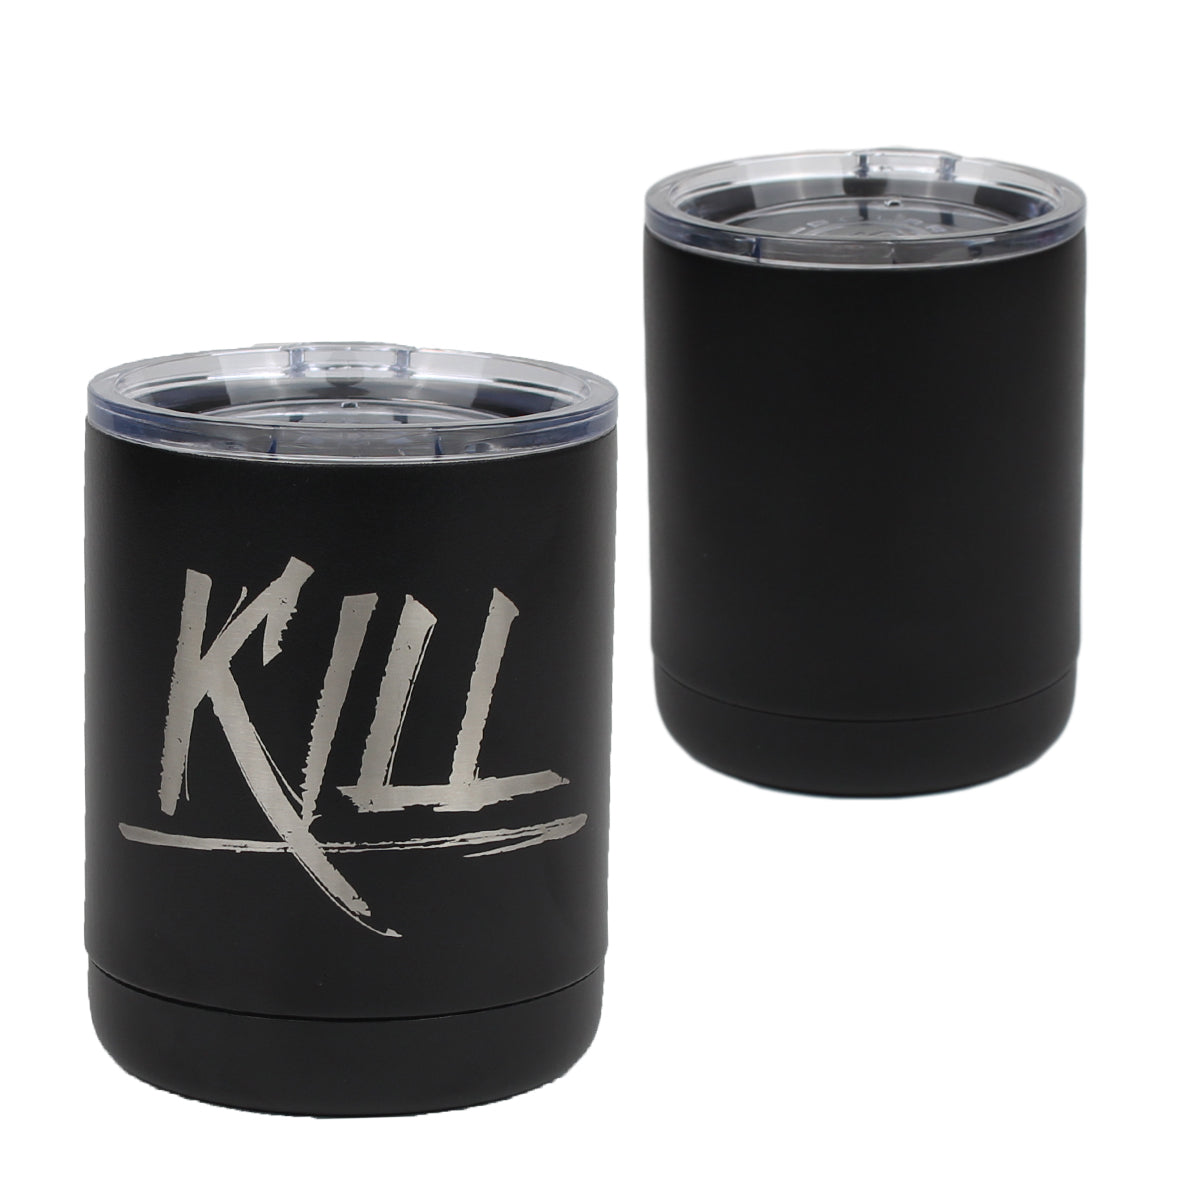 Kill - 10oz Lowball - Pipe Hitters Union